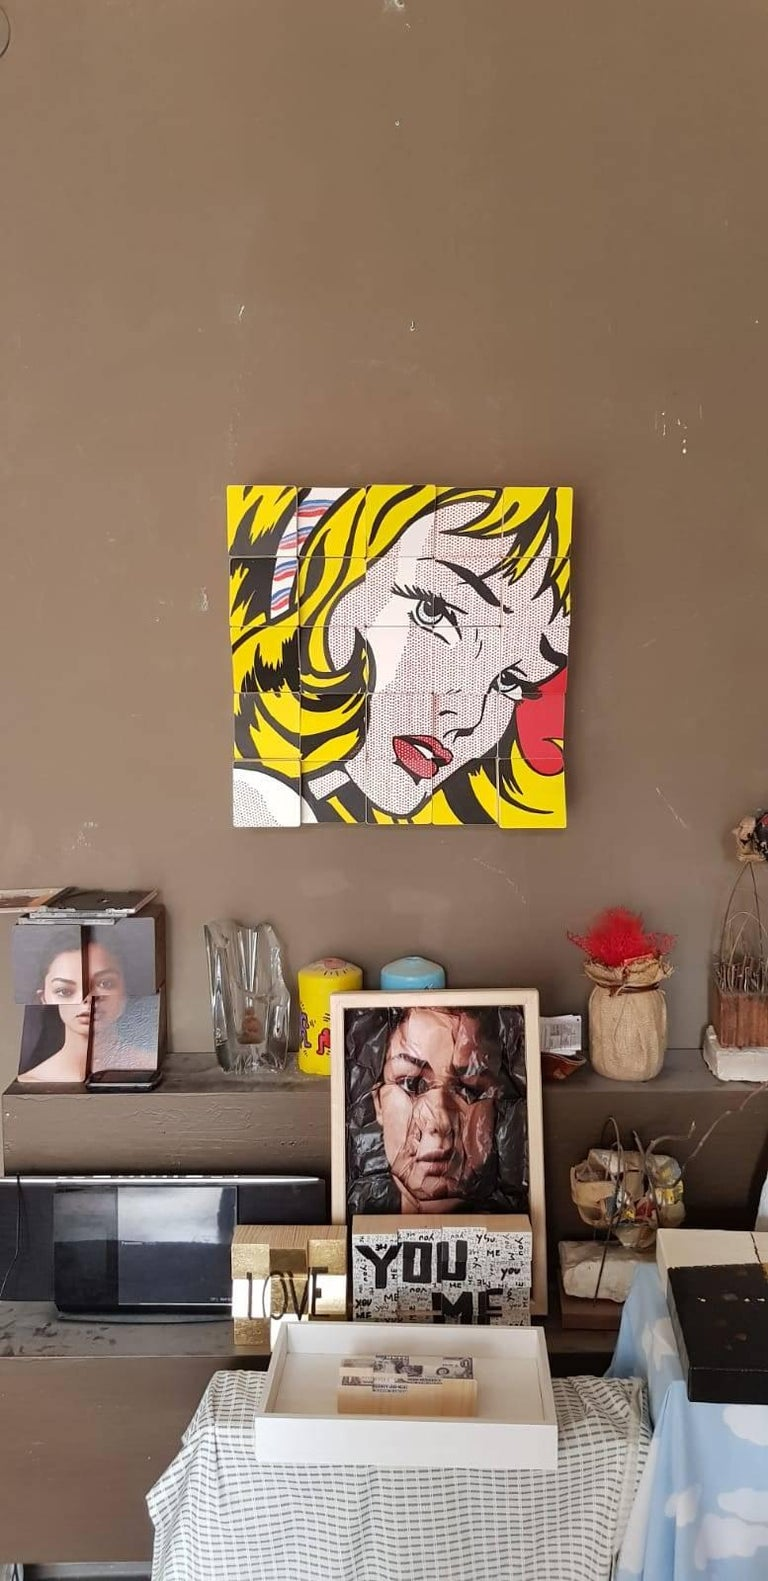 My Girl tribute to Roy Lichtenstein Acrylic Paint on Cotton Paper, Wooden Blocks - Conceptual Art by Rux Art